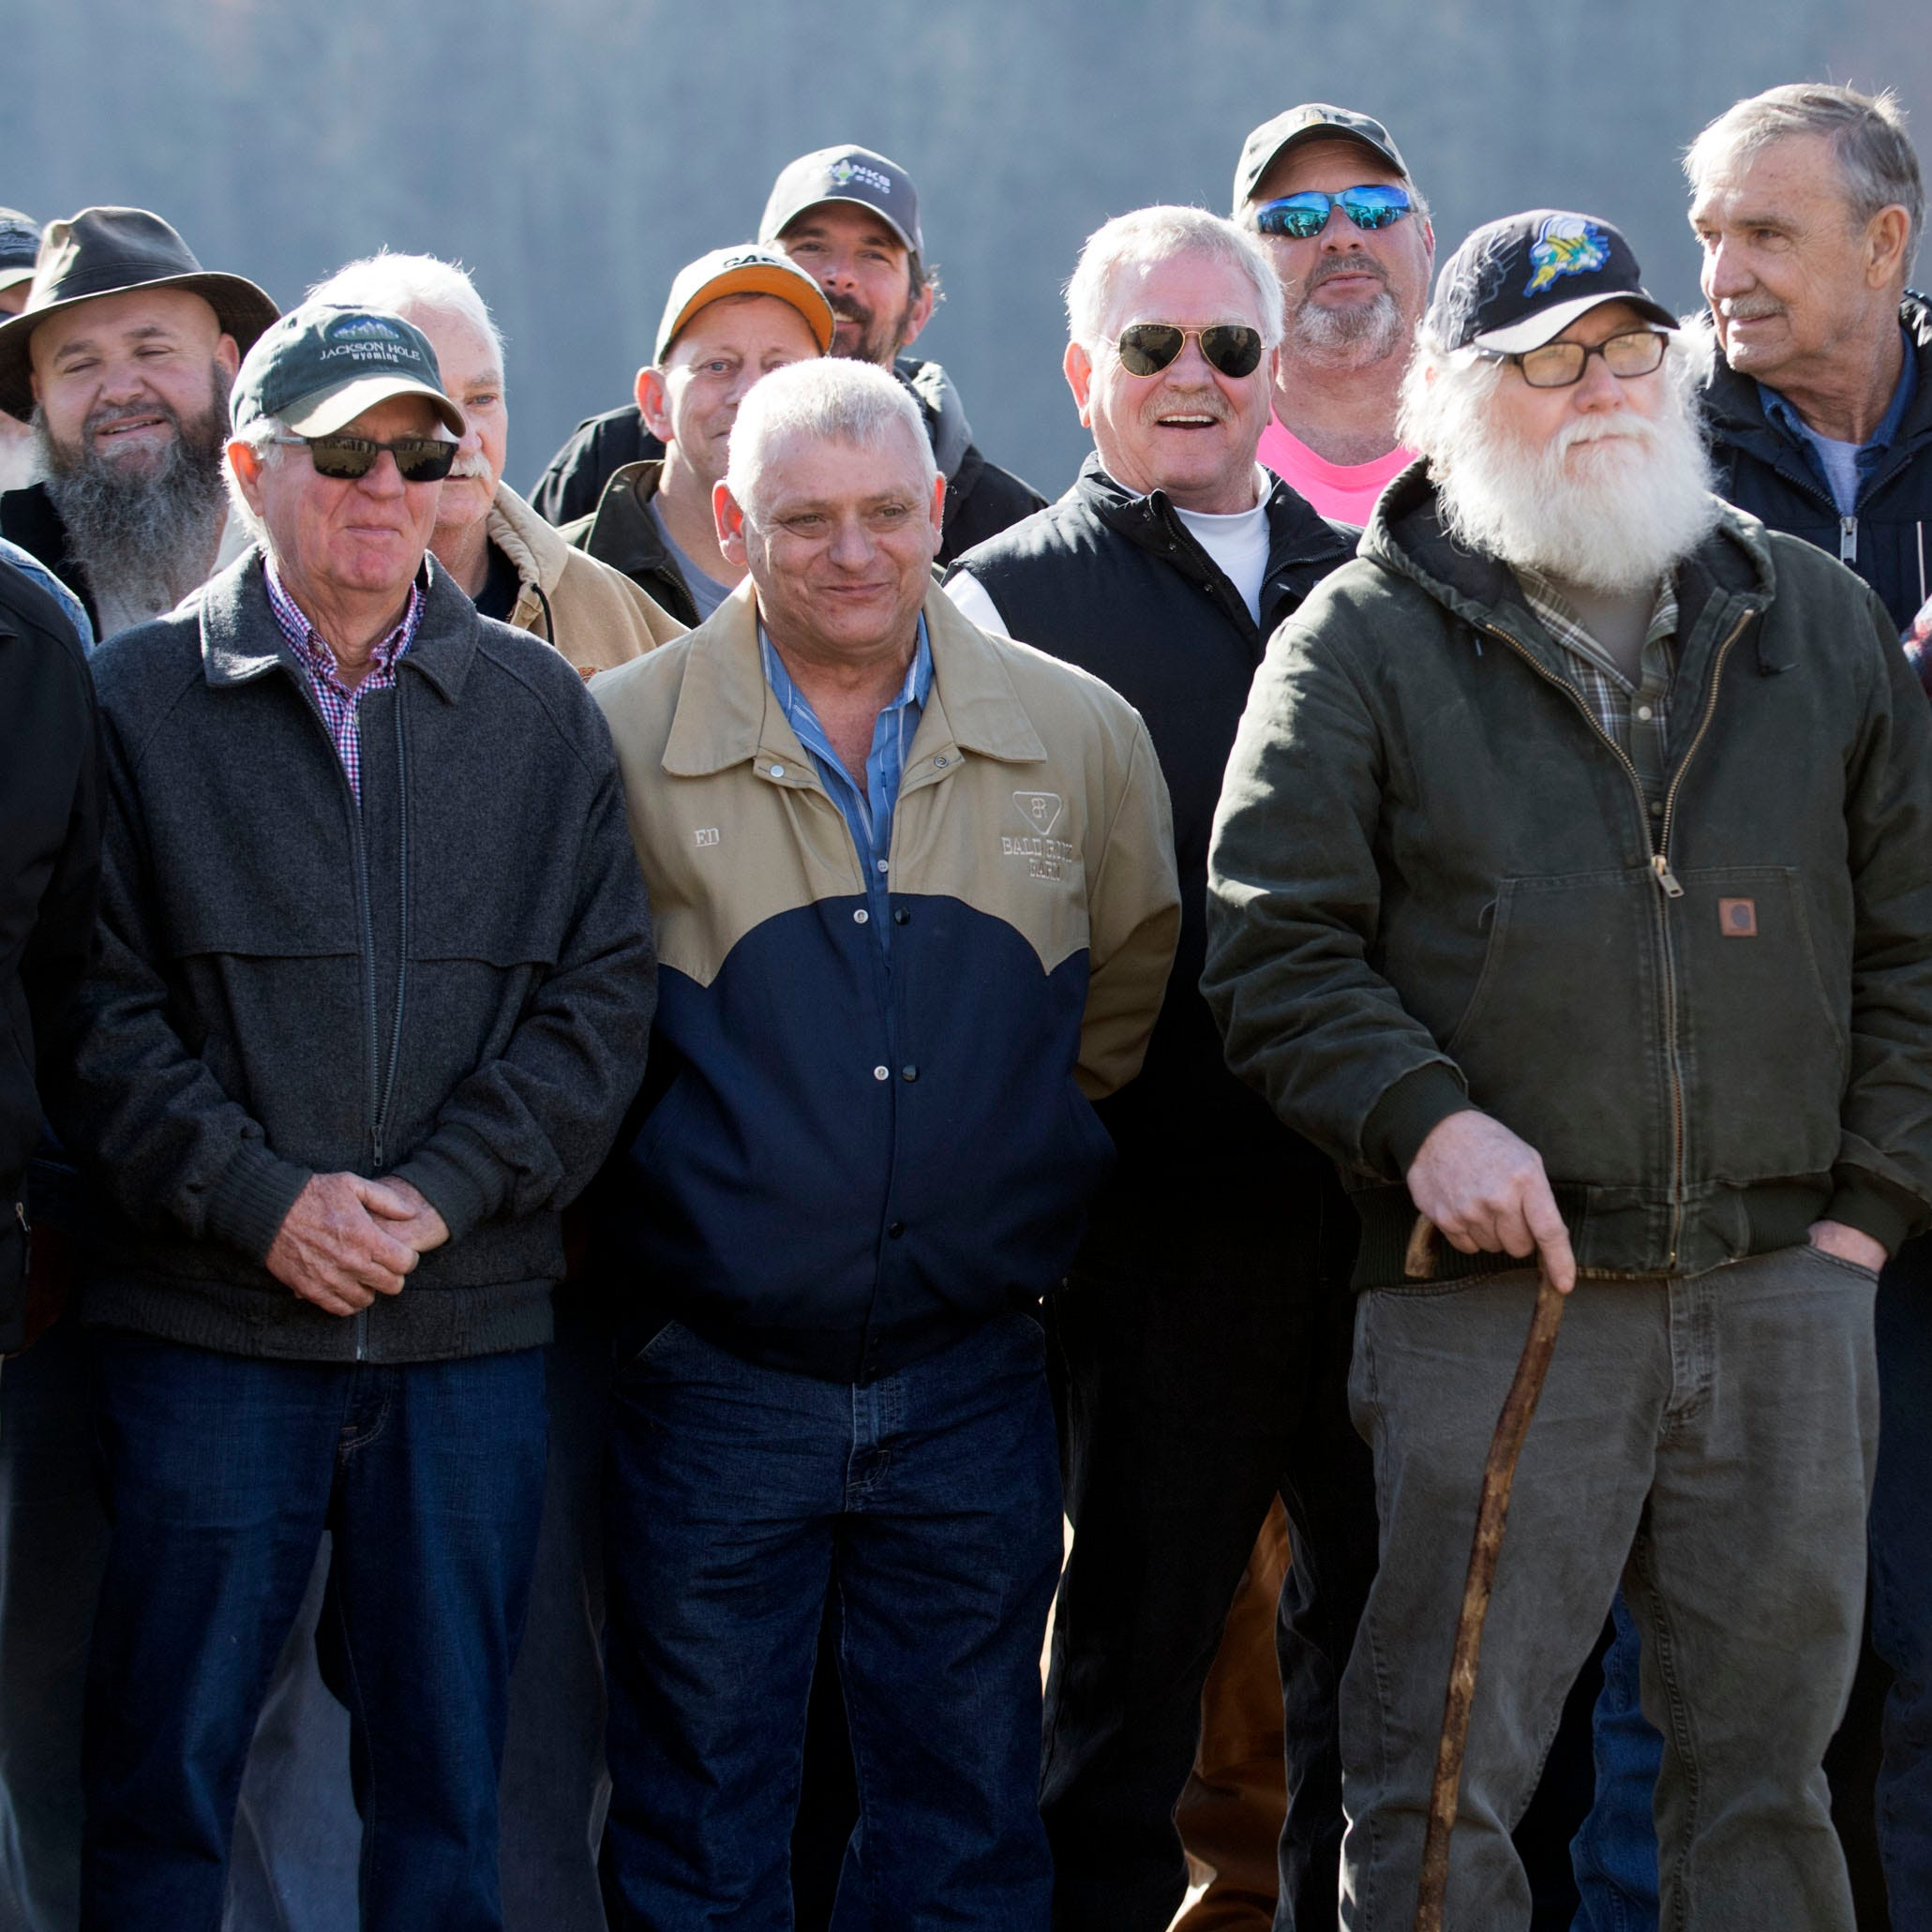 Victor Ashe: TVA shows insensitivity to workers in Kingston coal ash spill cleanup